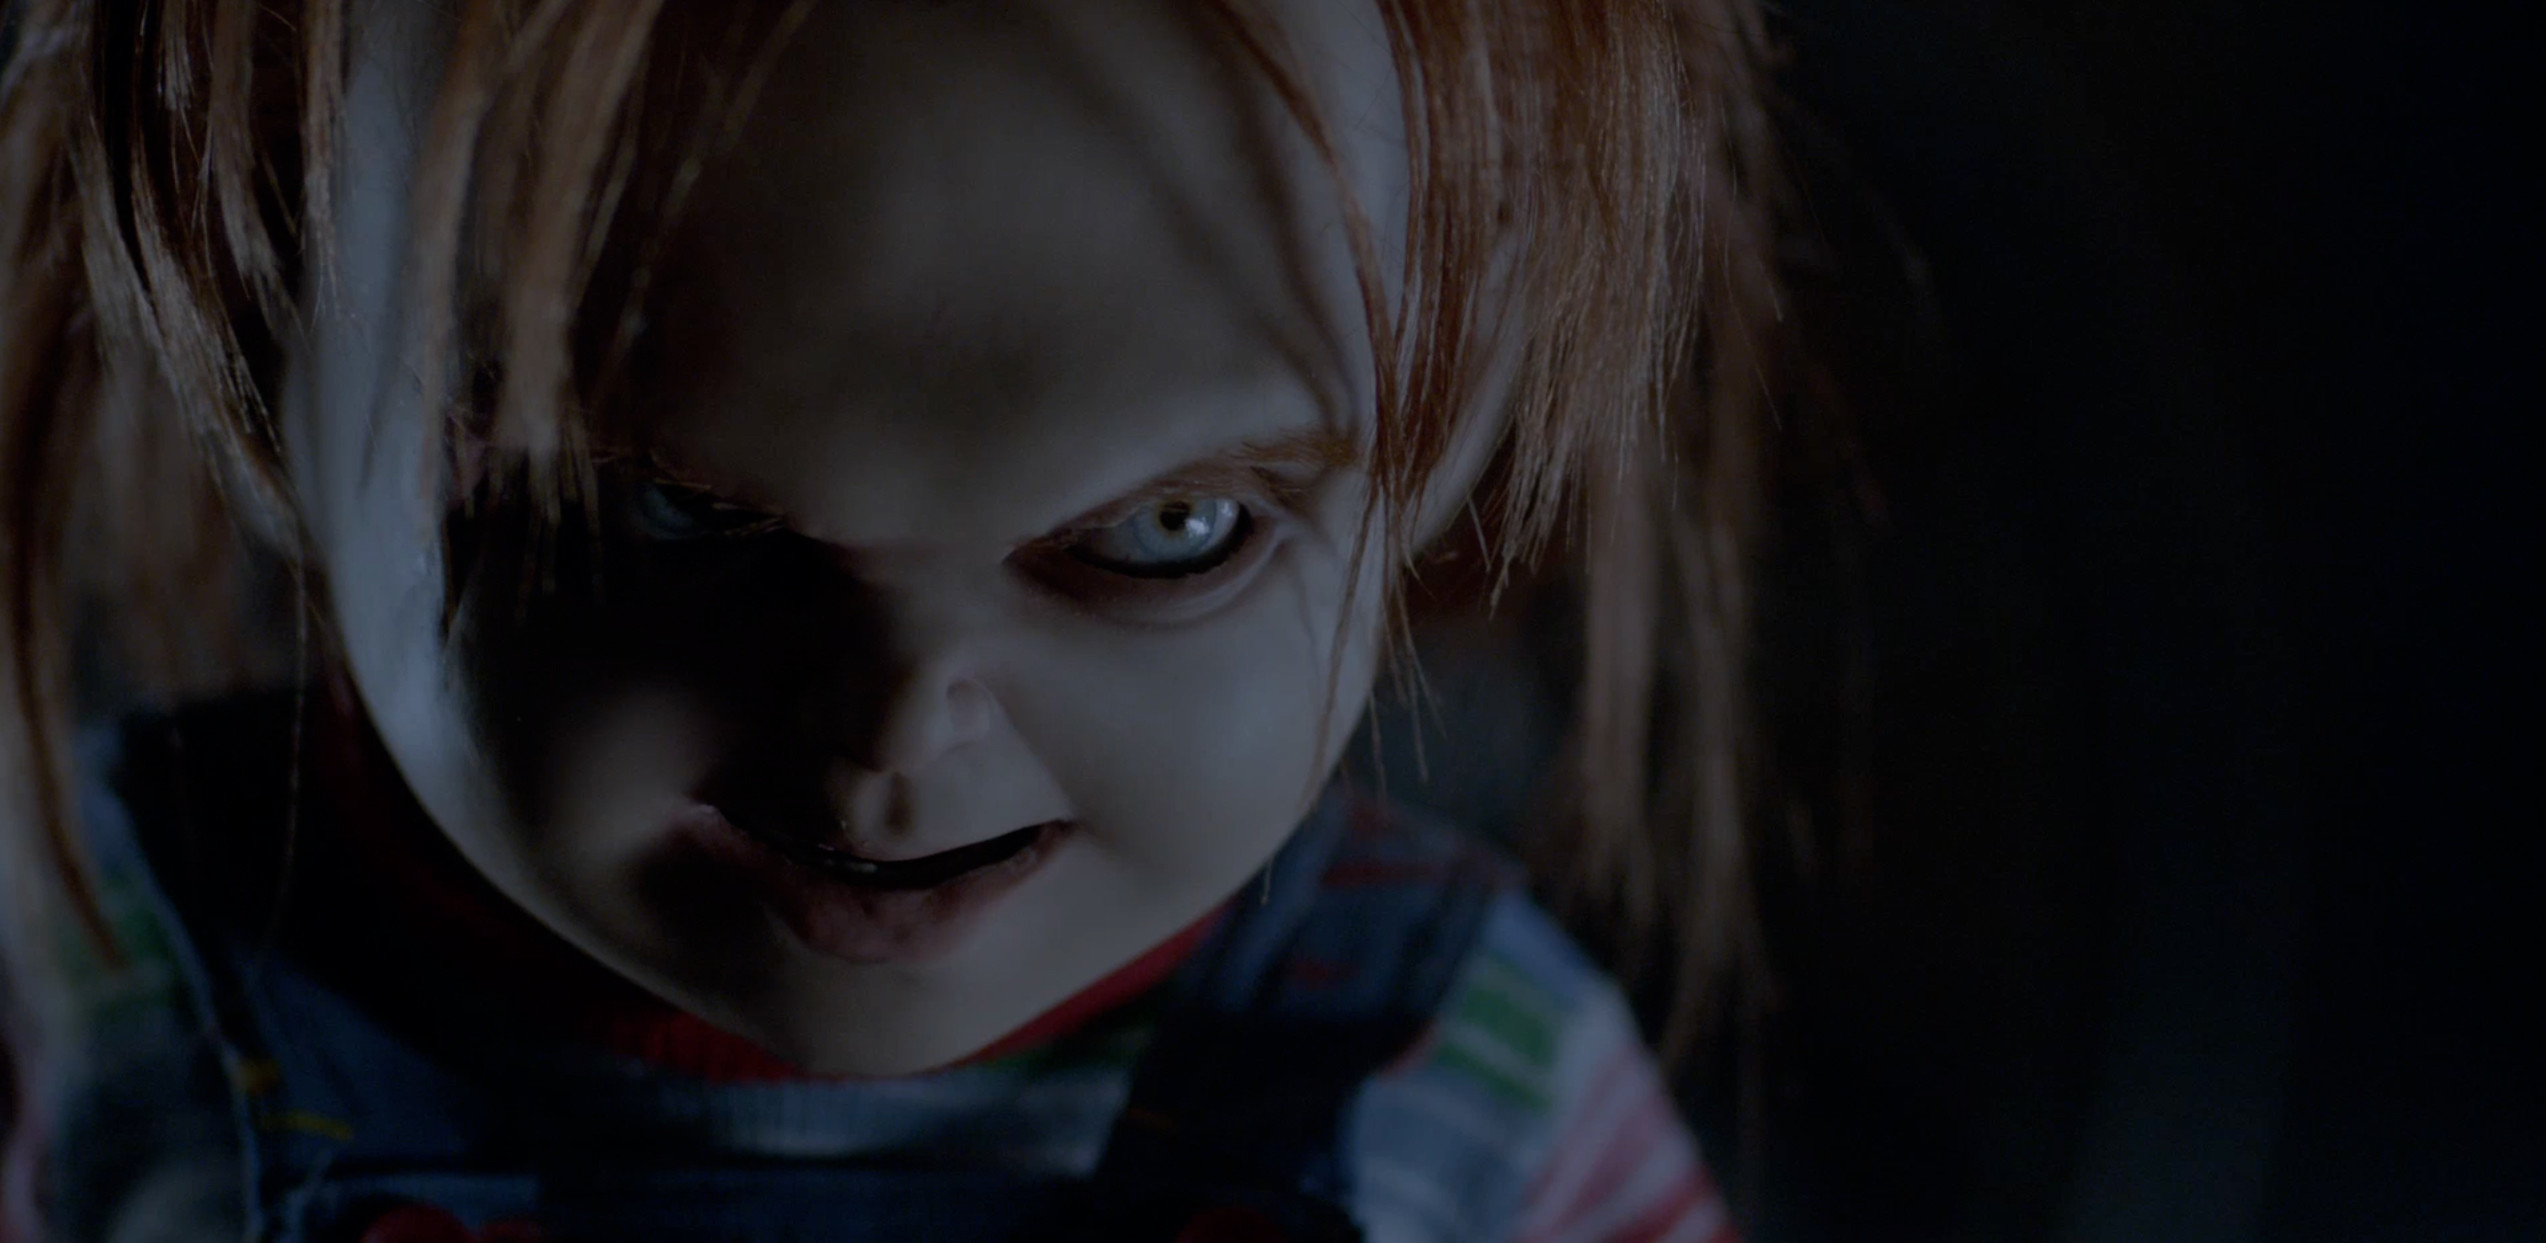 2546x1243 How 'Curse of Chucky' Completely Restored My Faith in the Franchise -  Bloody Disgusting